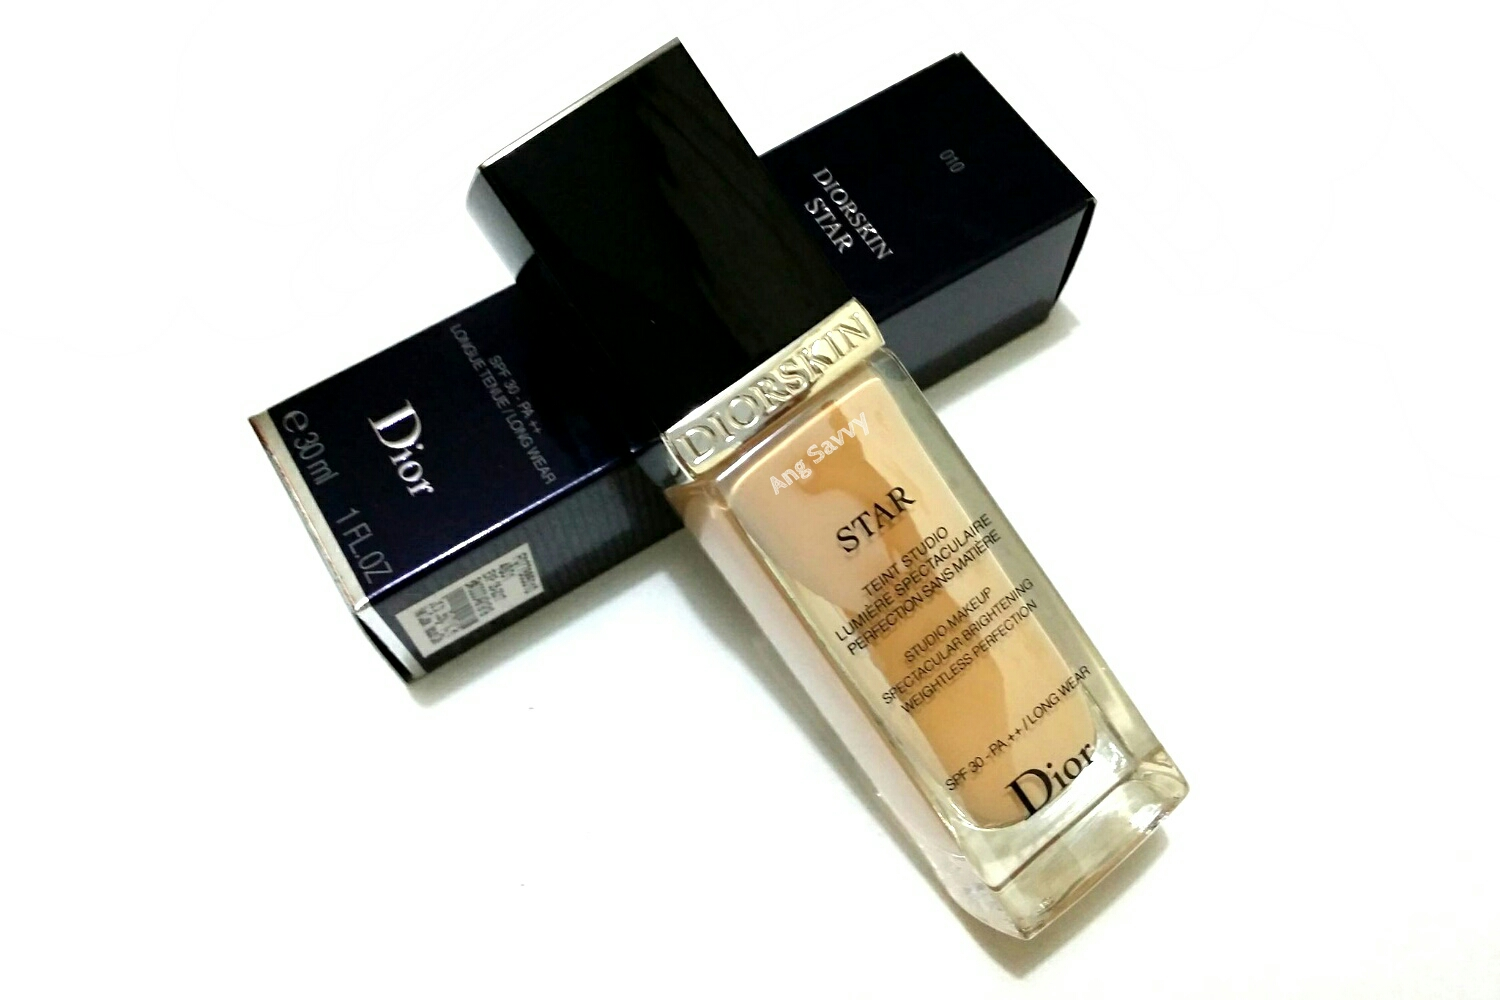 Dior Diorskin Star Studio Makeup Foundation